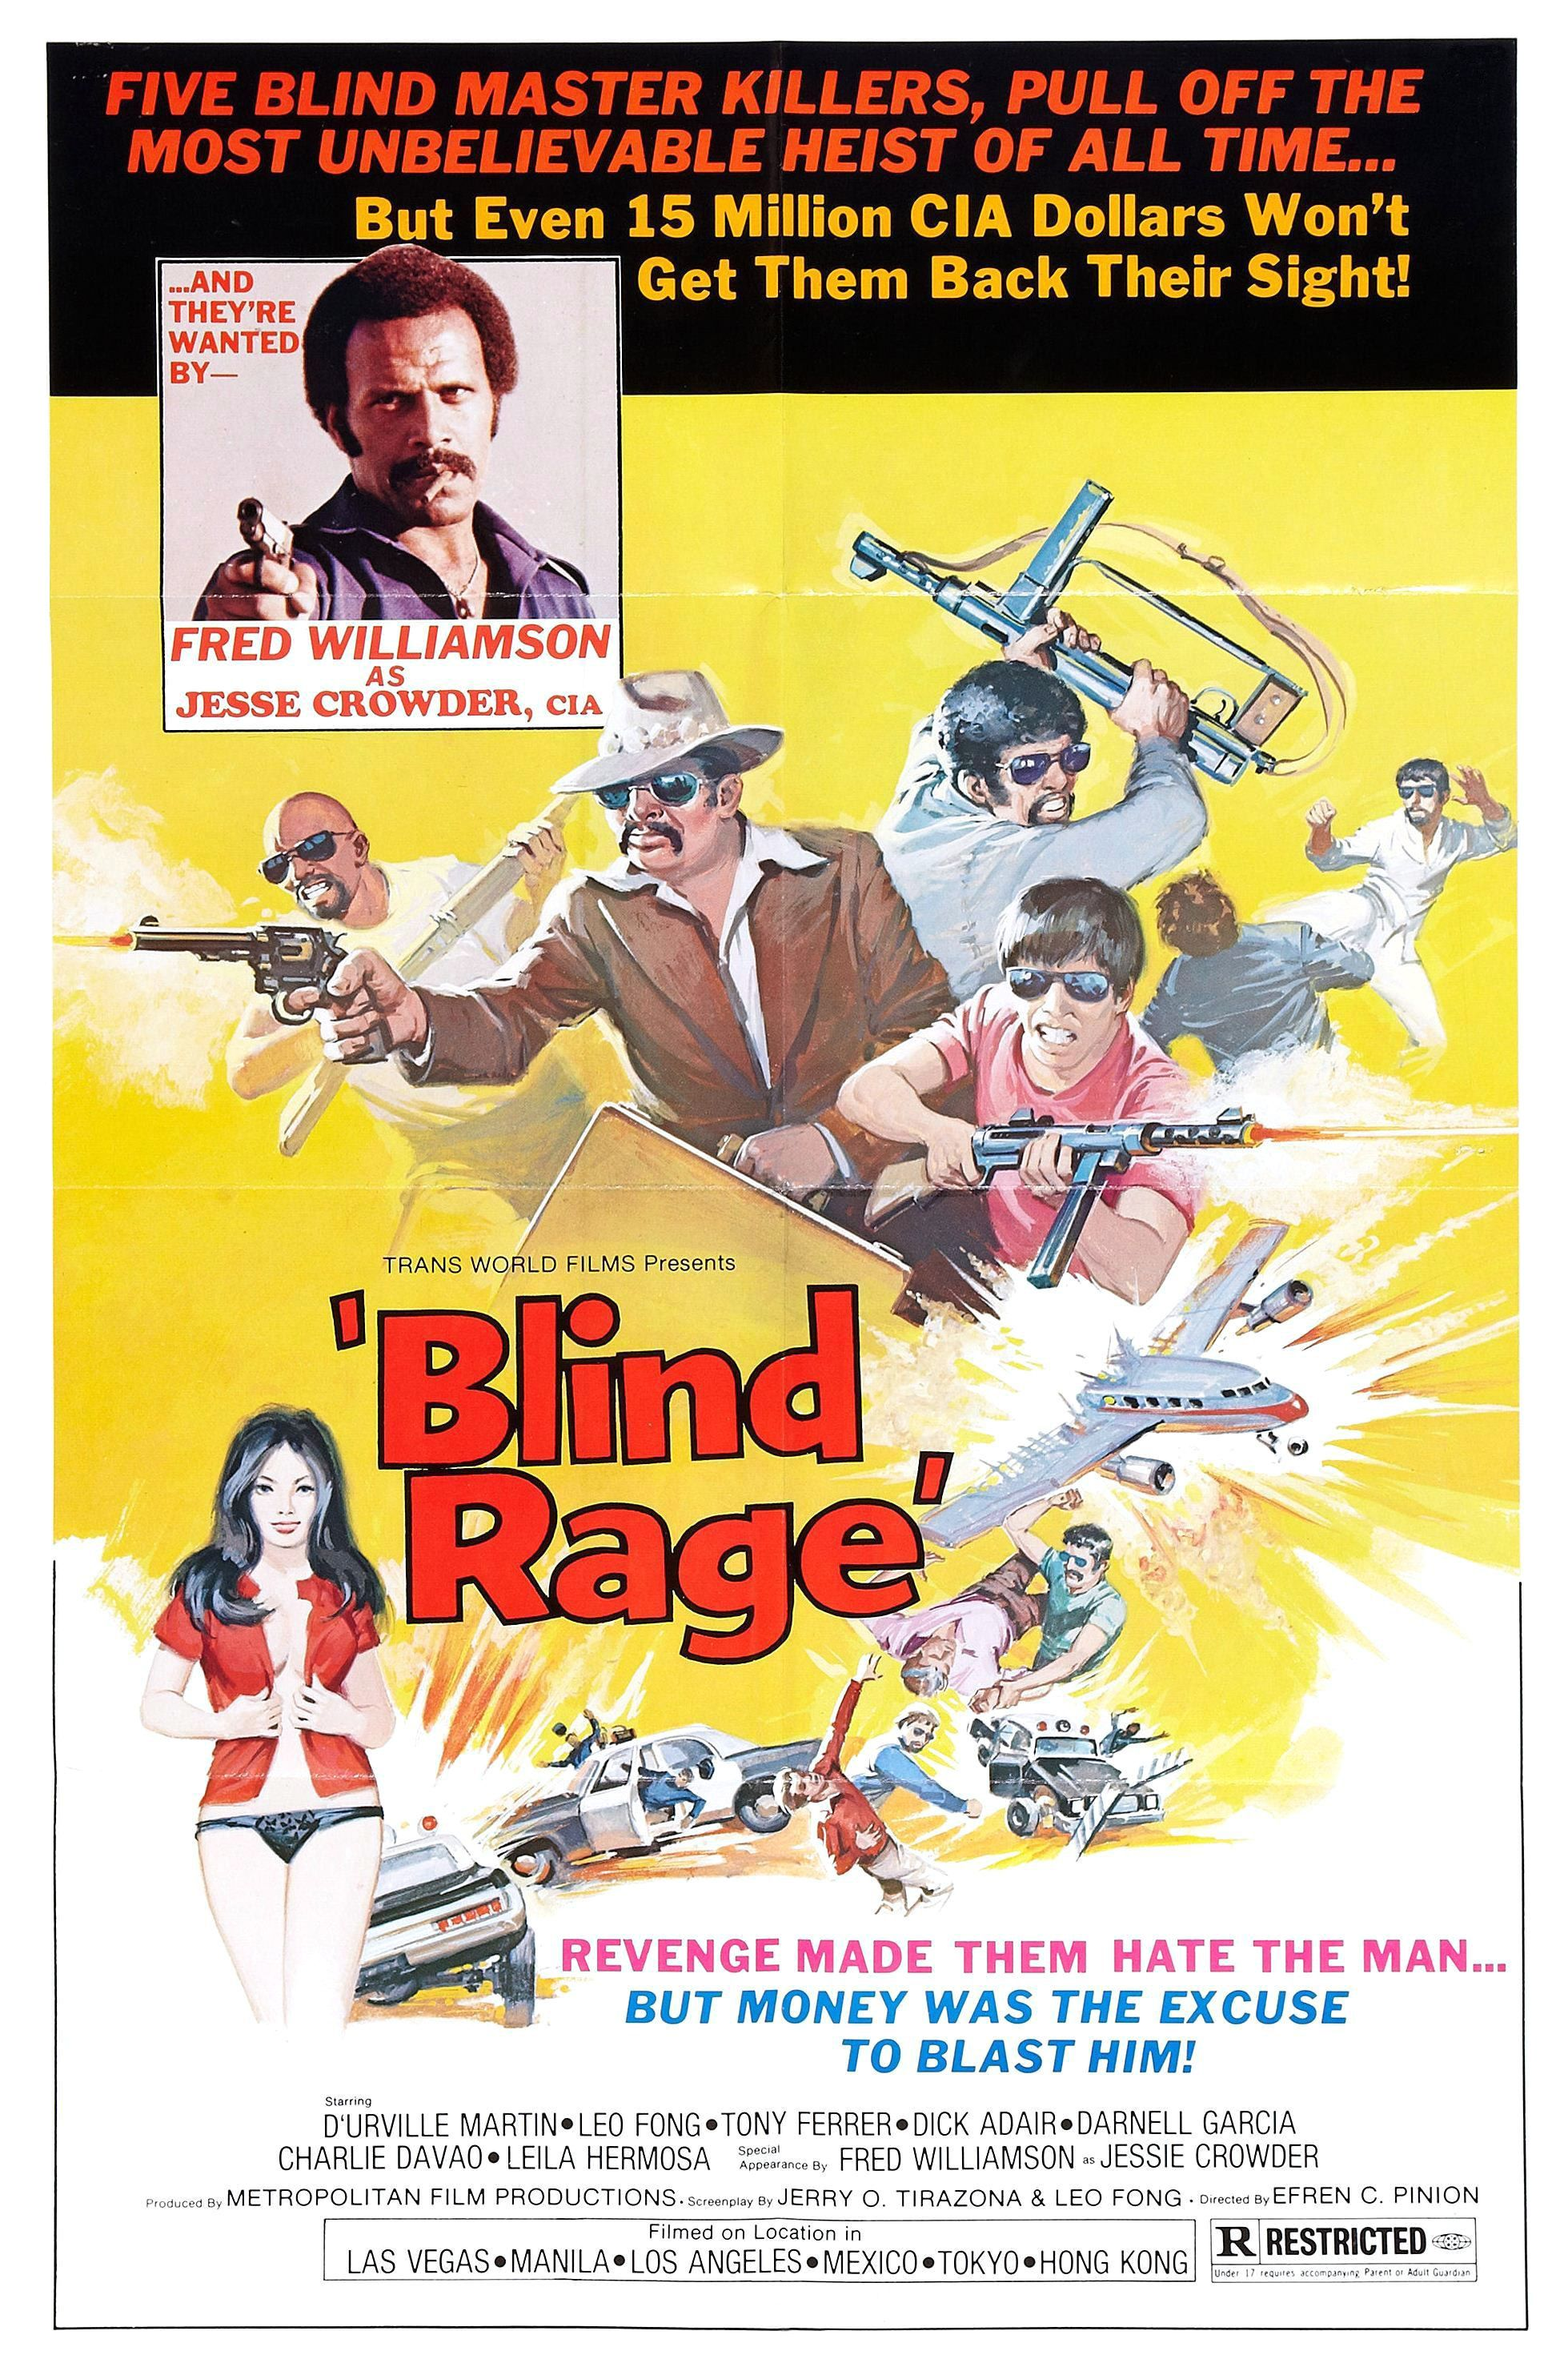 Blind Rage (1978) | Grindhouse movie posters of the 1960's